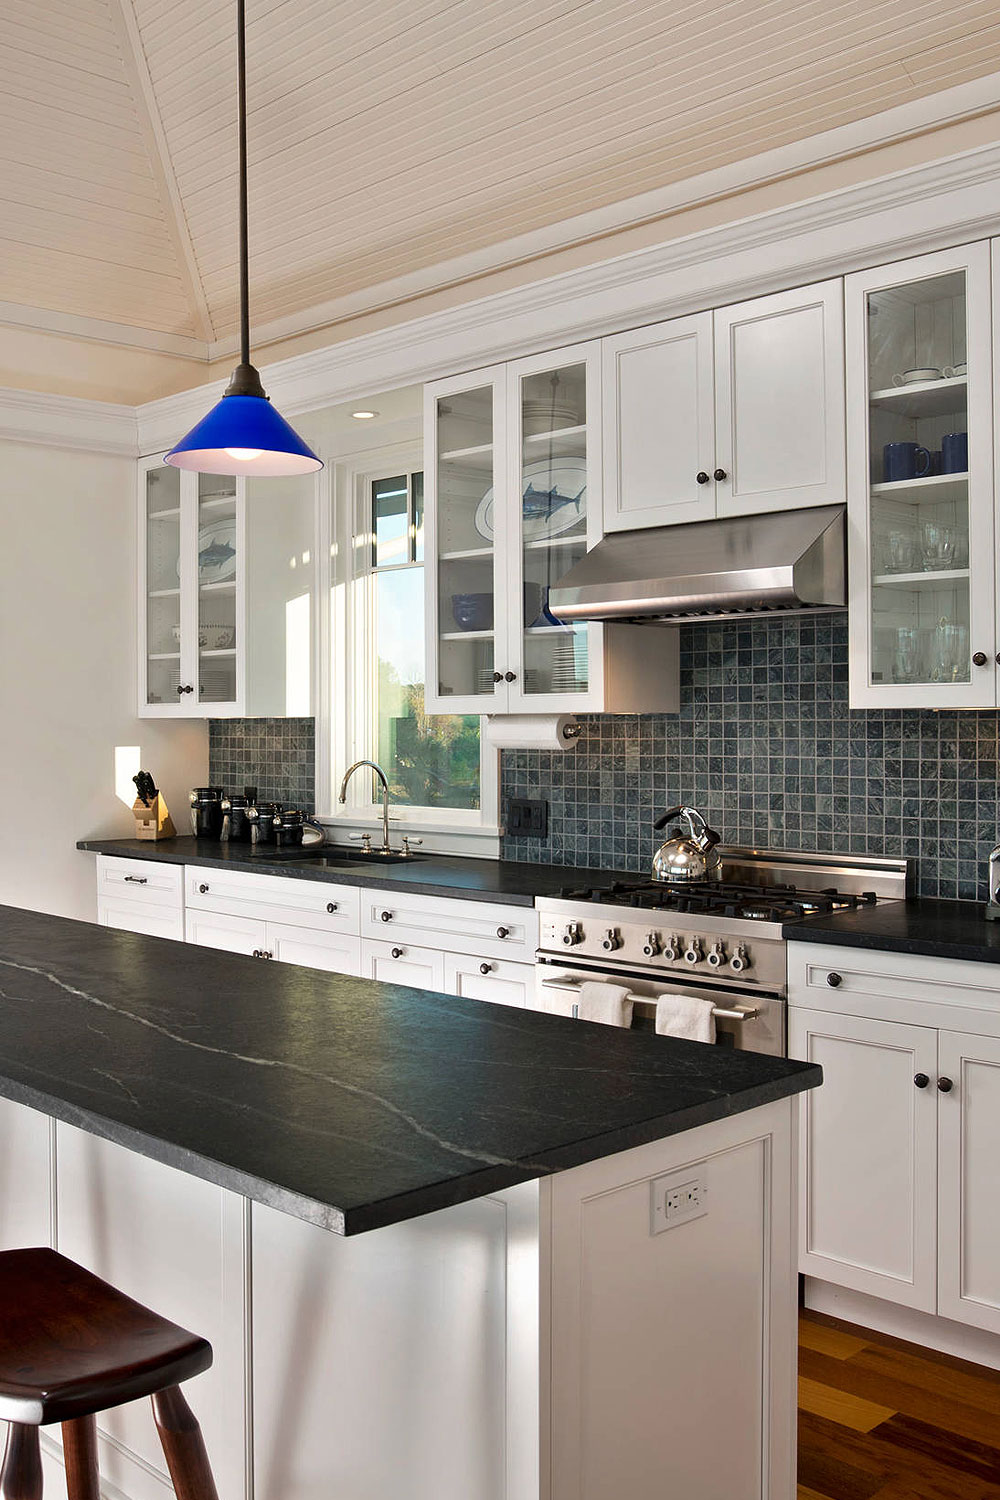 Pin by Morghan Buhrman on House remodeling in 2020   Black ...